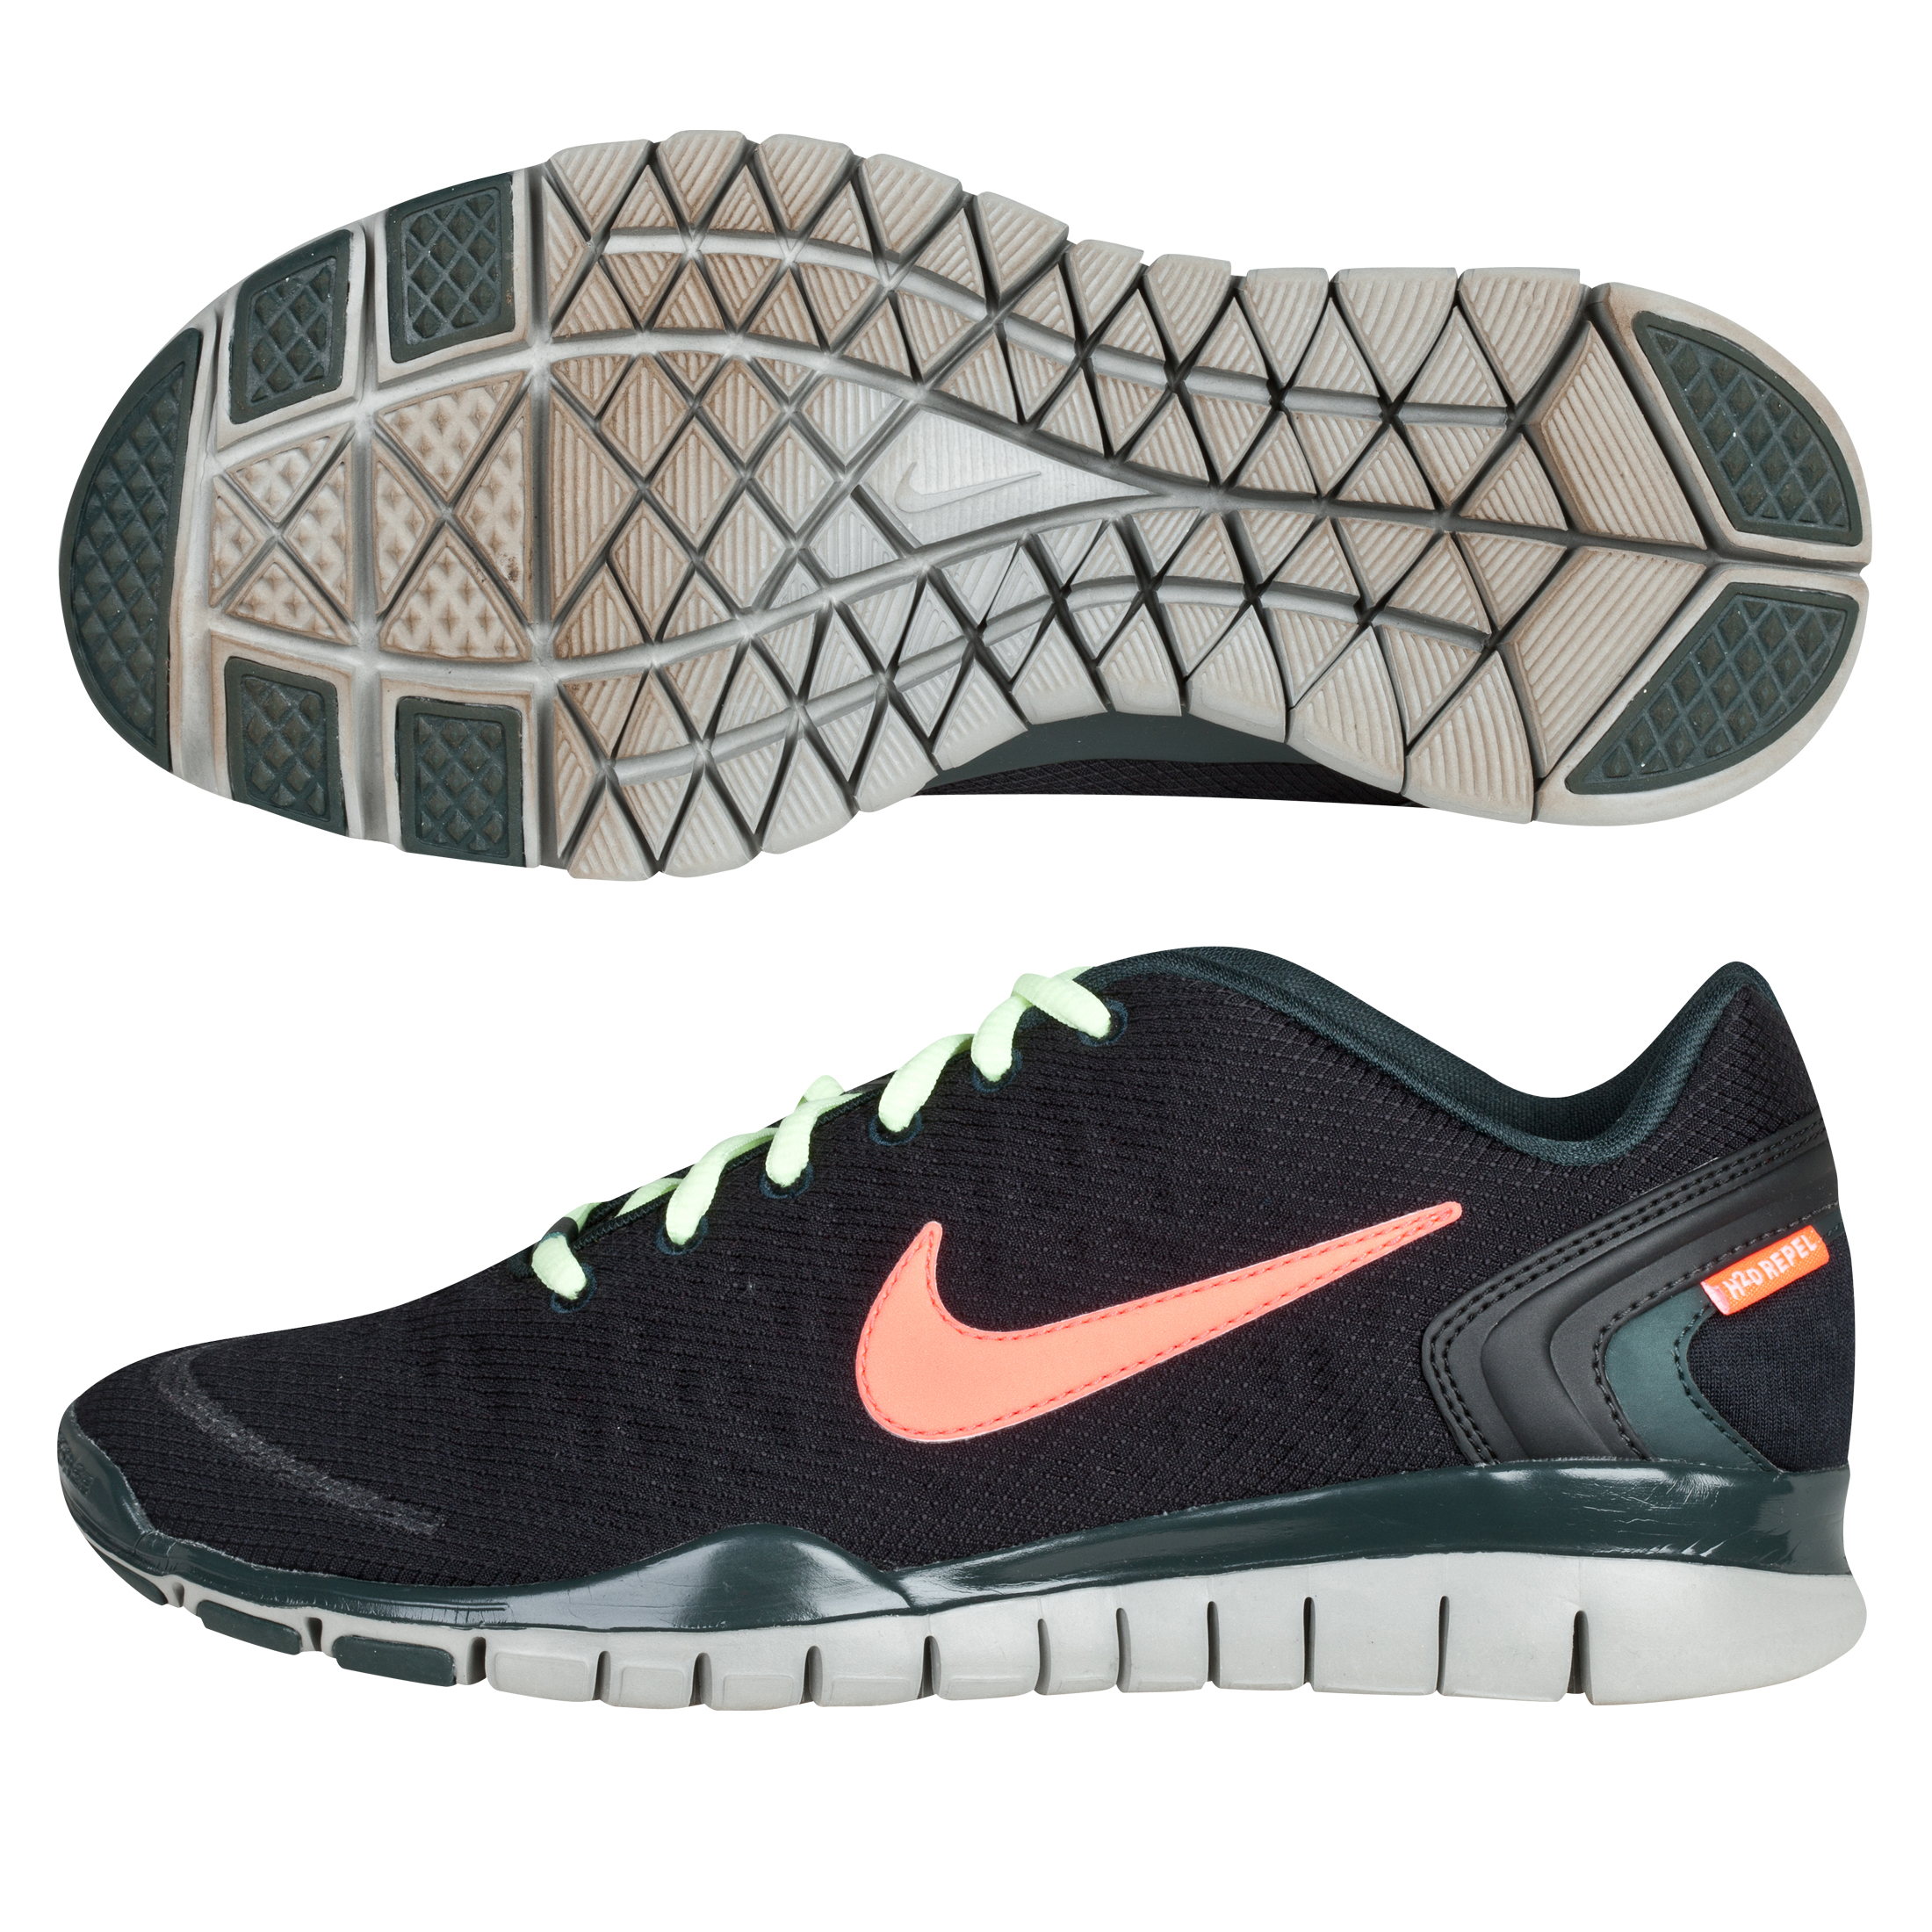 Nike Free Trainer Fit 2 Shield Trainers - Black/Bright Crimson - Womens